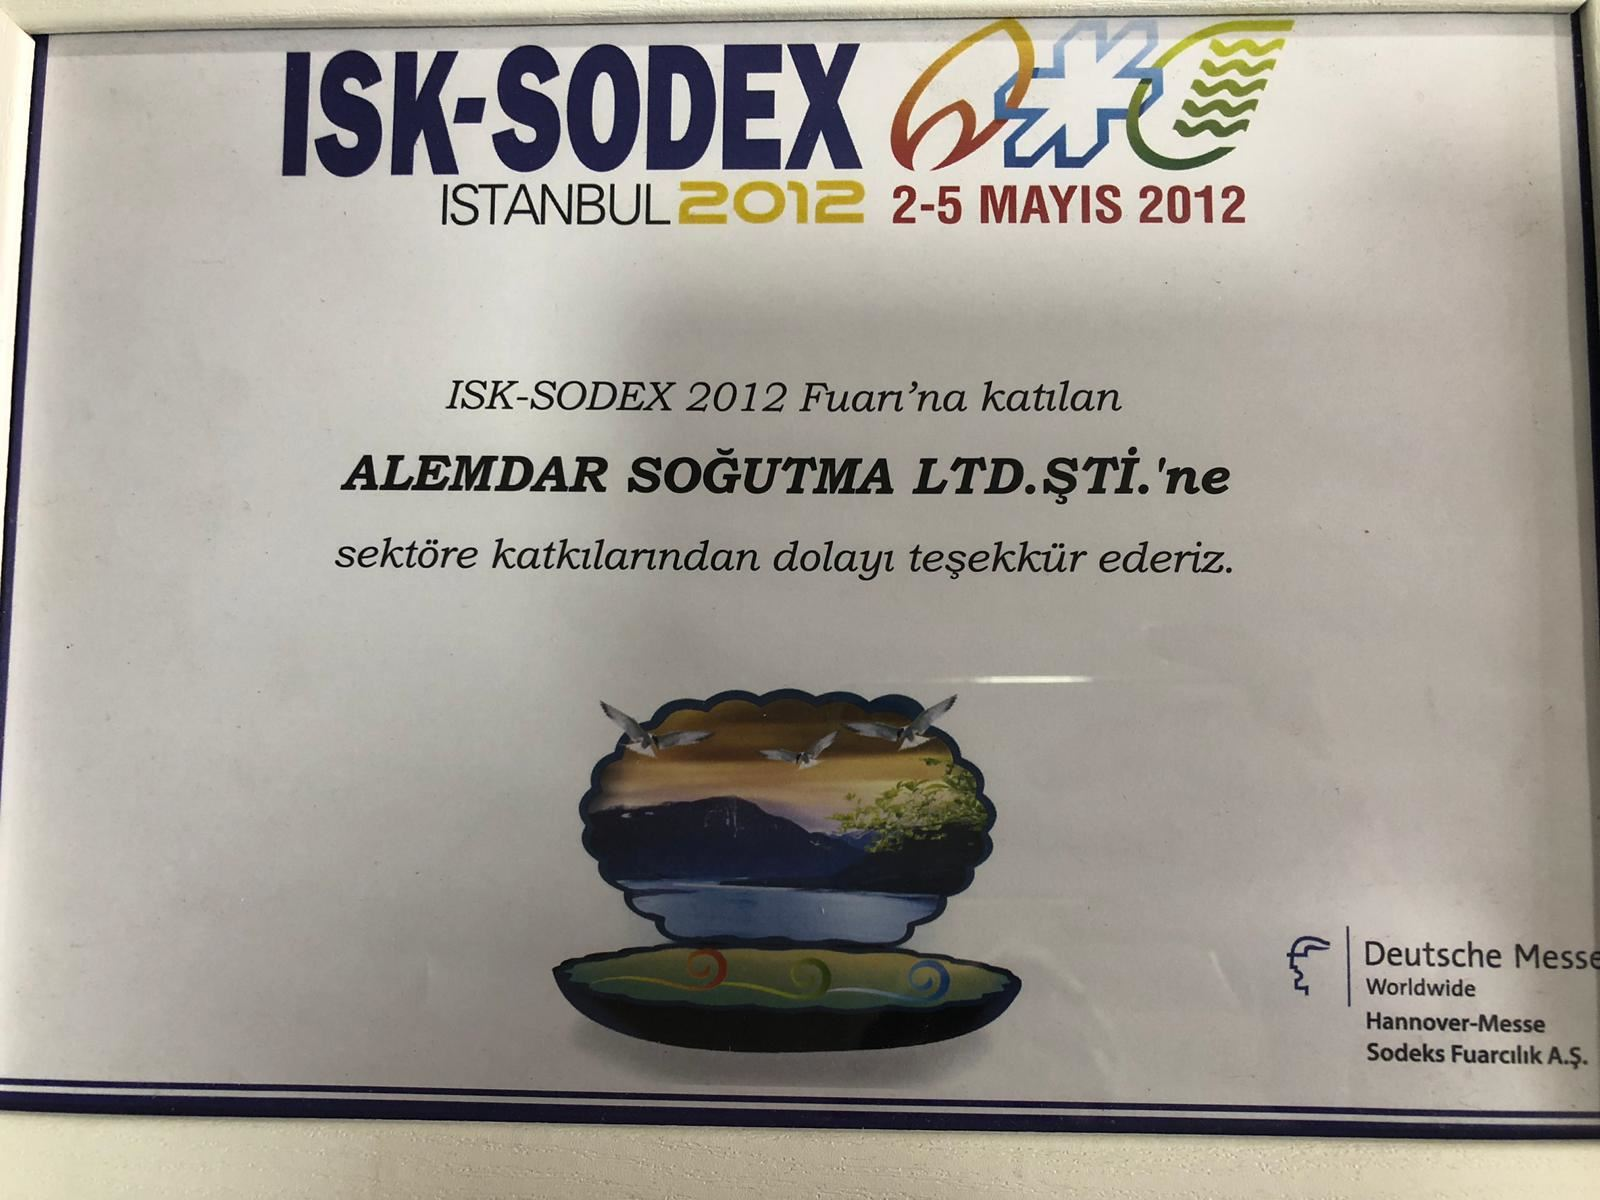 ISK-SODEX İSTANBUL 2012